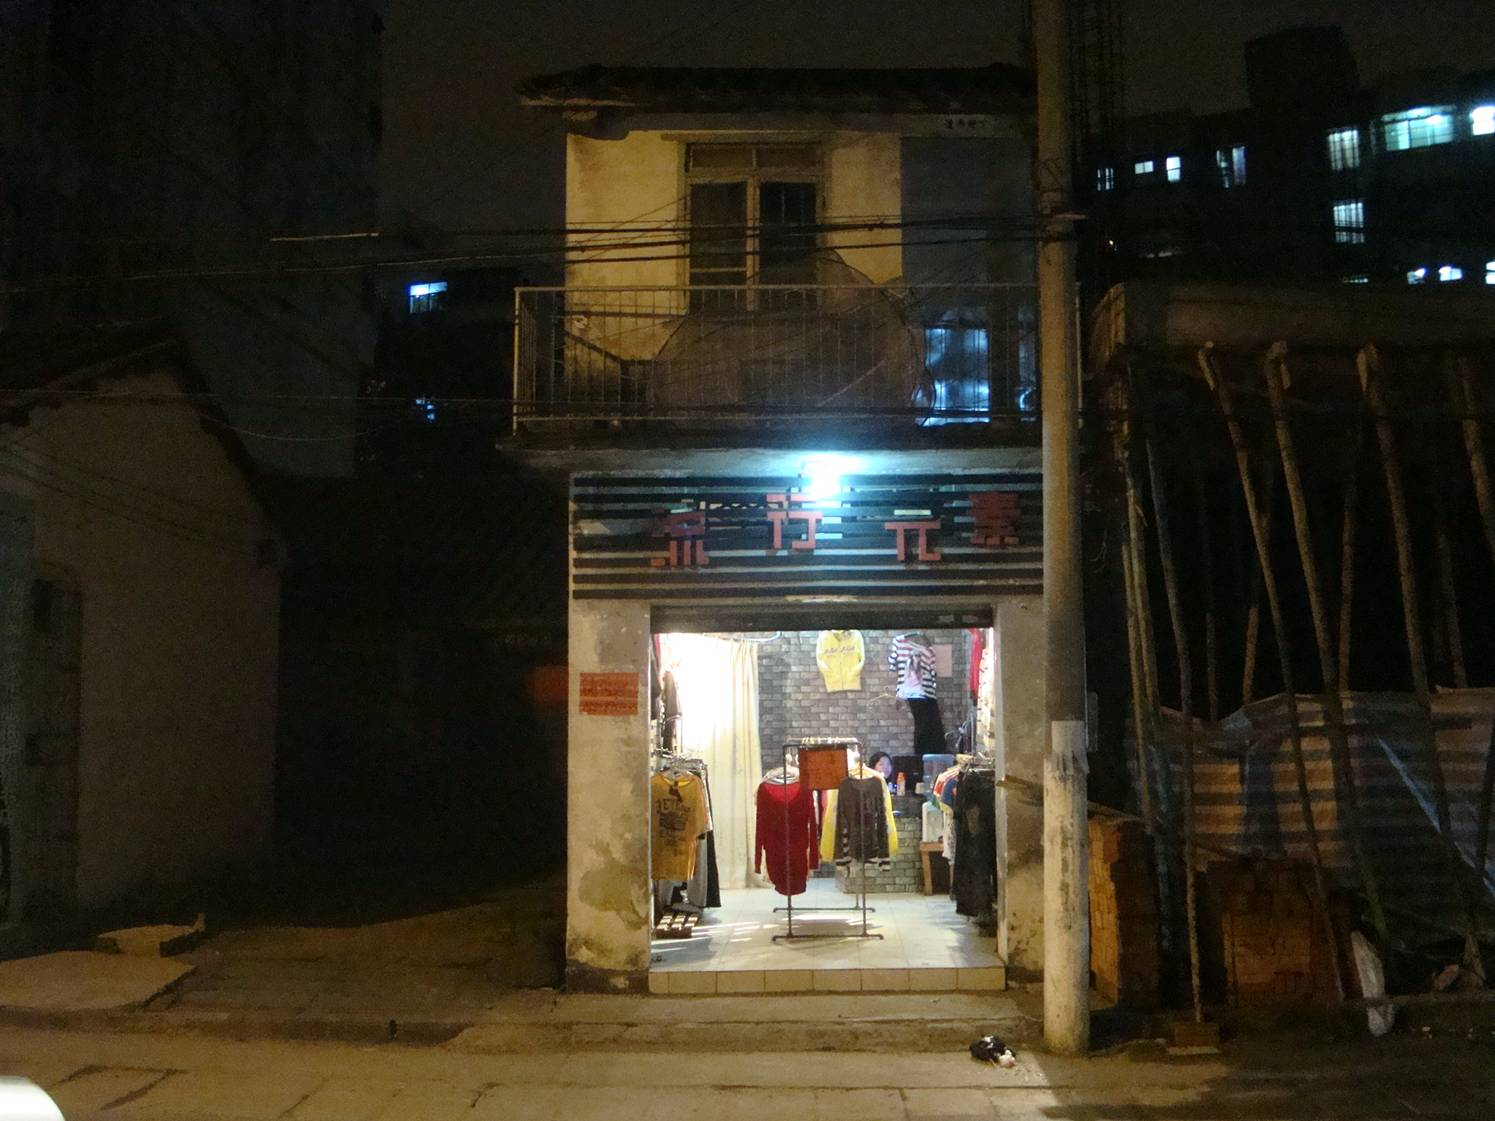 Picture: Night at a dress shop in Haikou, Hainan Island, China